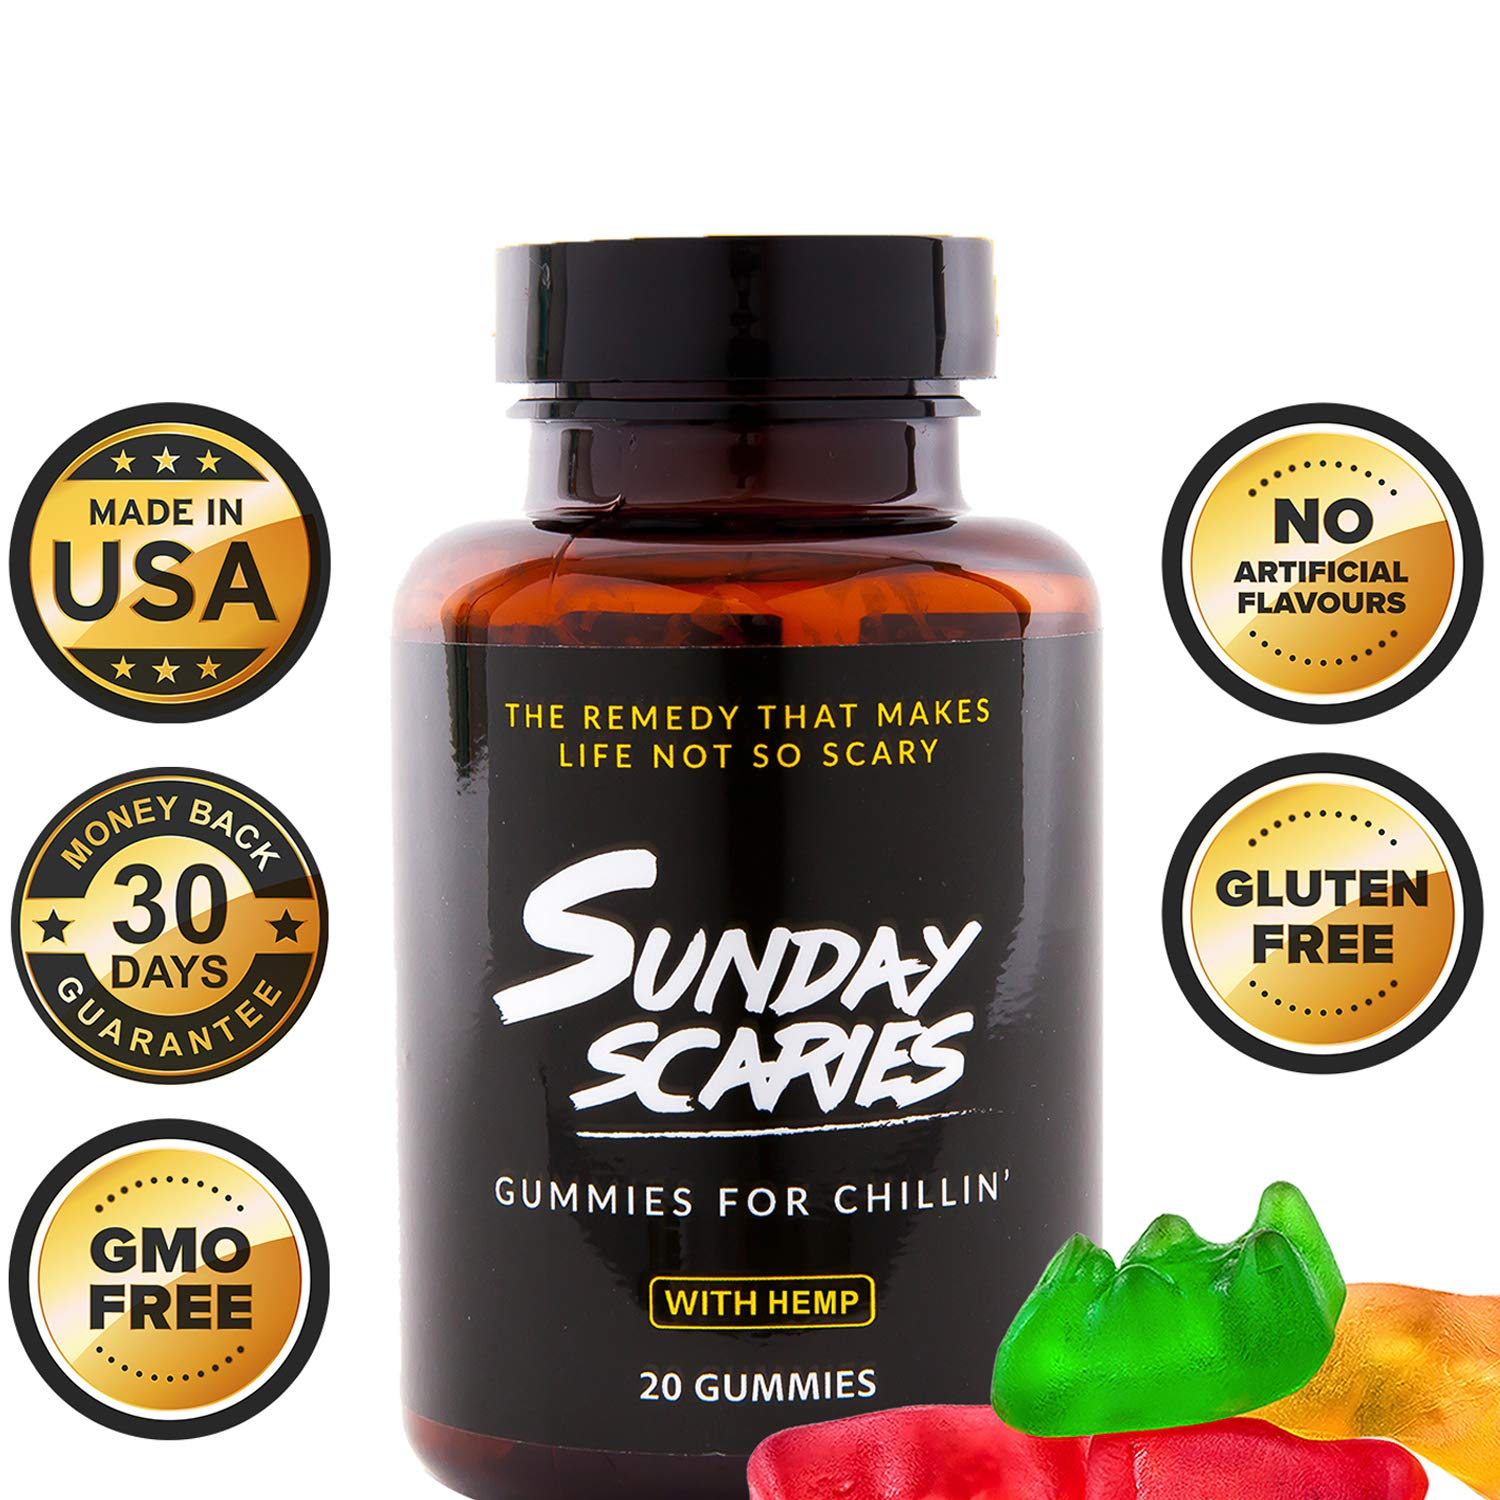 Sunday Scaries Hemp Extract Gummies w/Vitamins for That Cool, Calm & Collected Feeling – 10MG Each